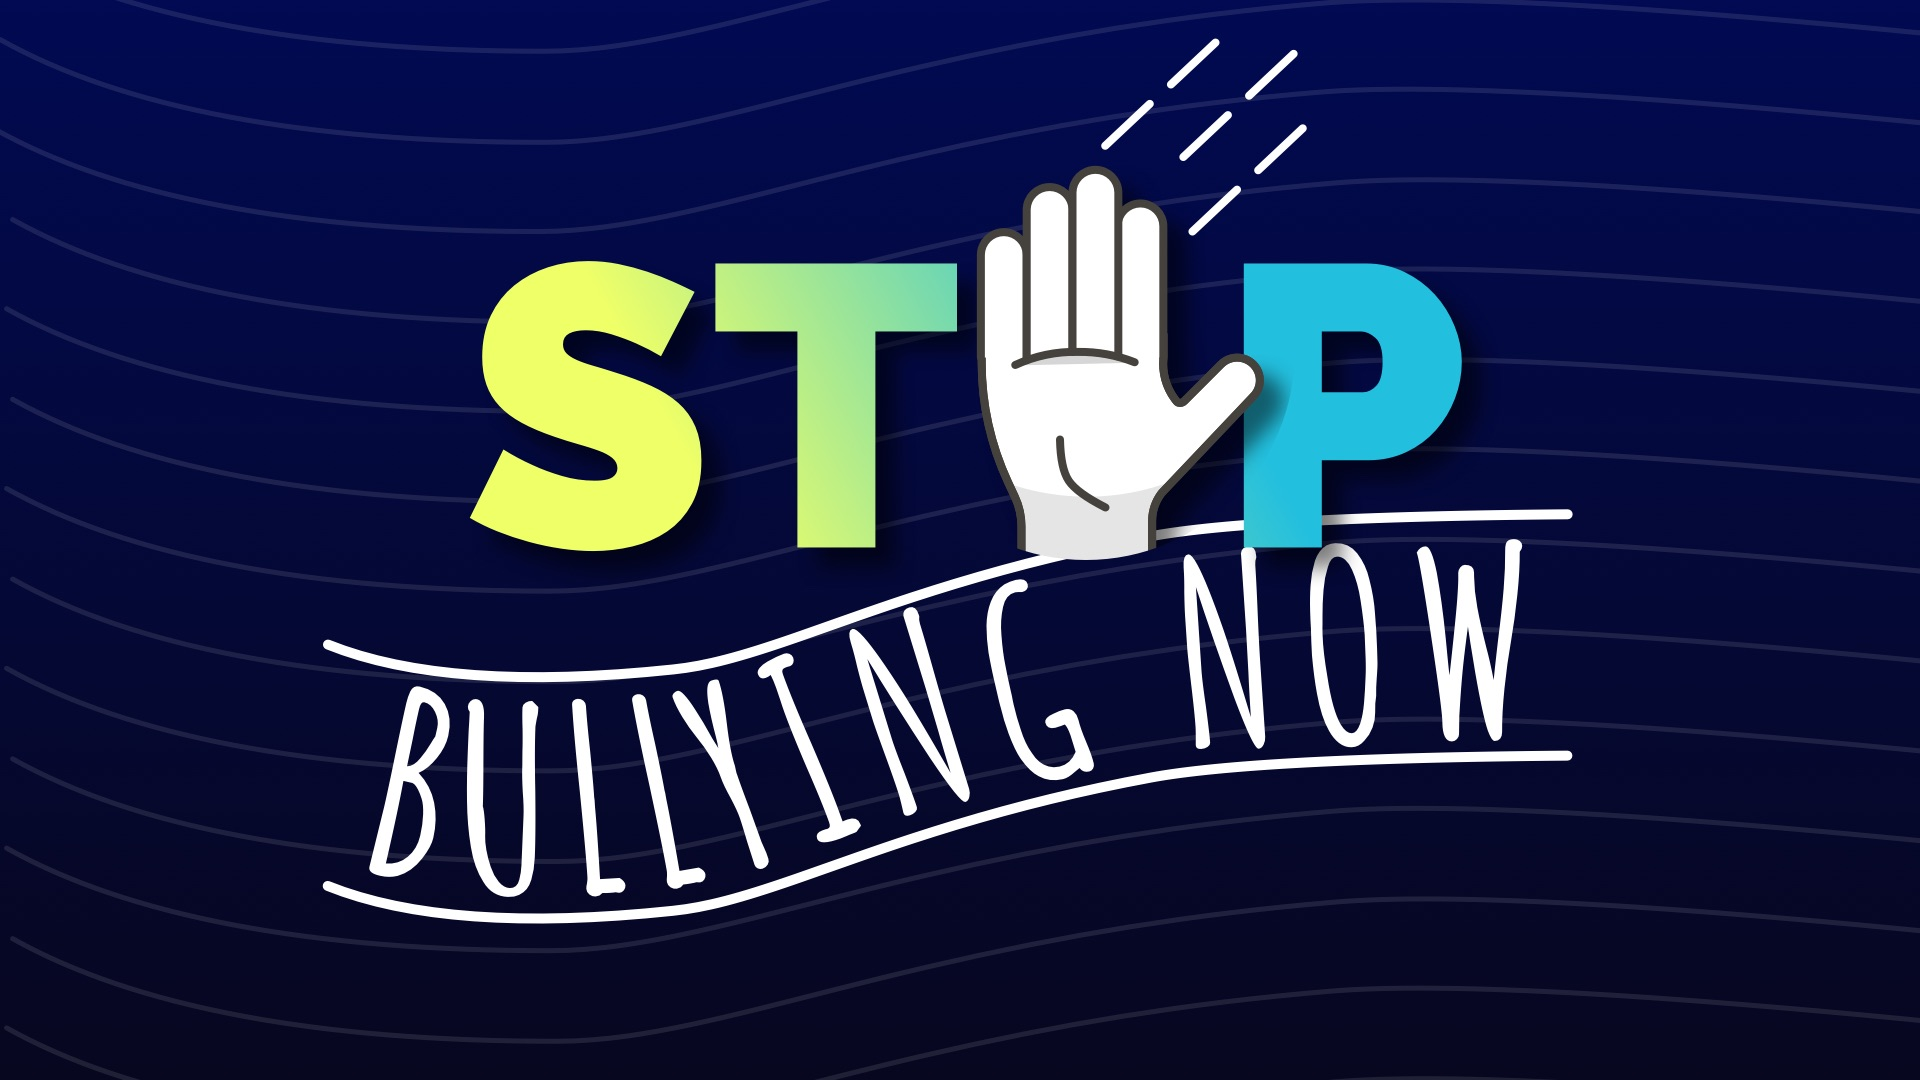 stop-bullying-now-anti-bullying-poster